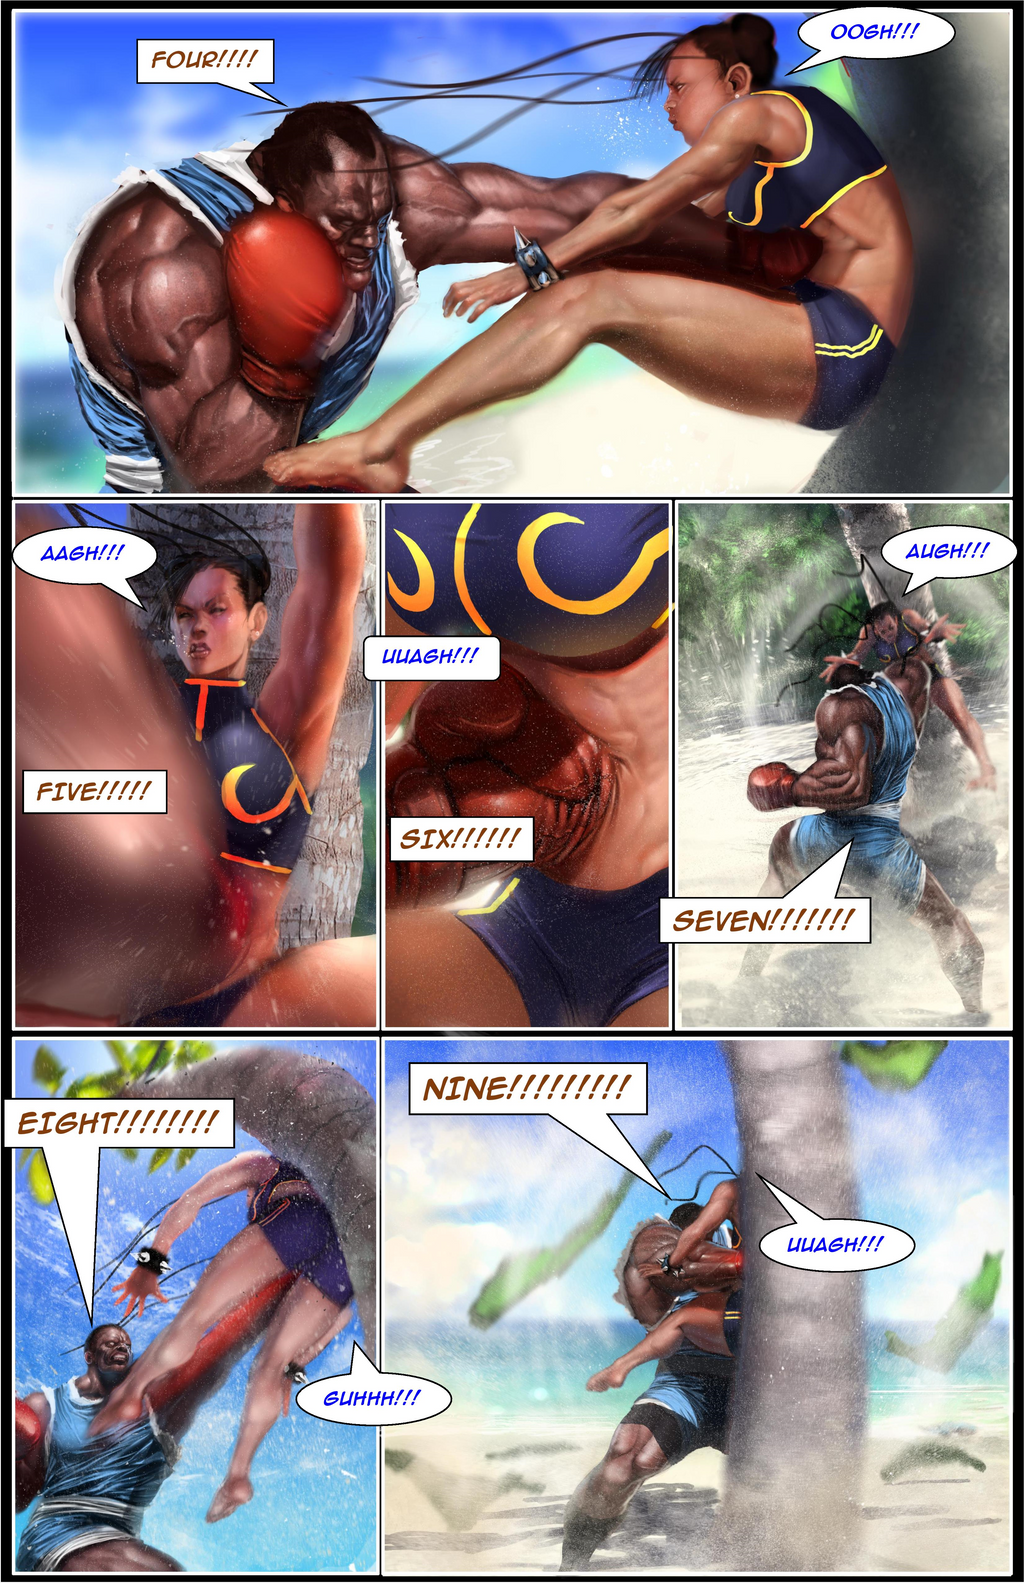 chun_li__the_gauntlet_page_23_by_tree_ink-dc7pie0.png